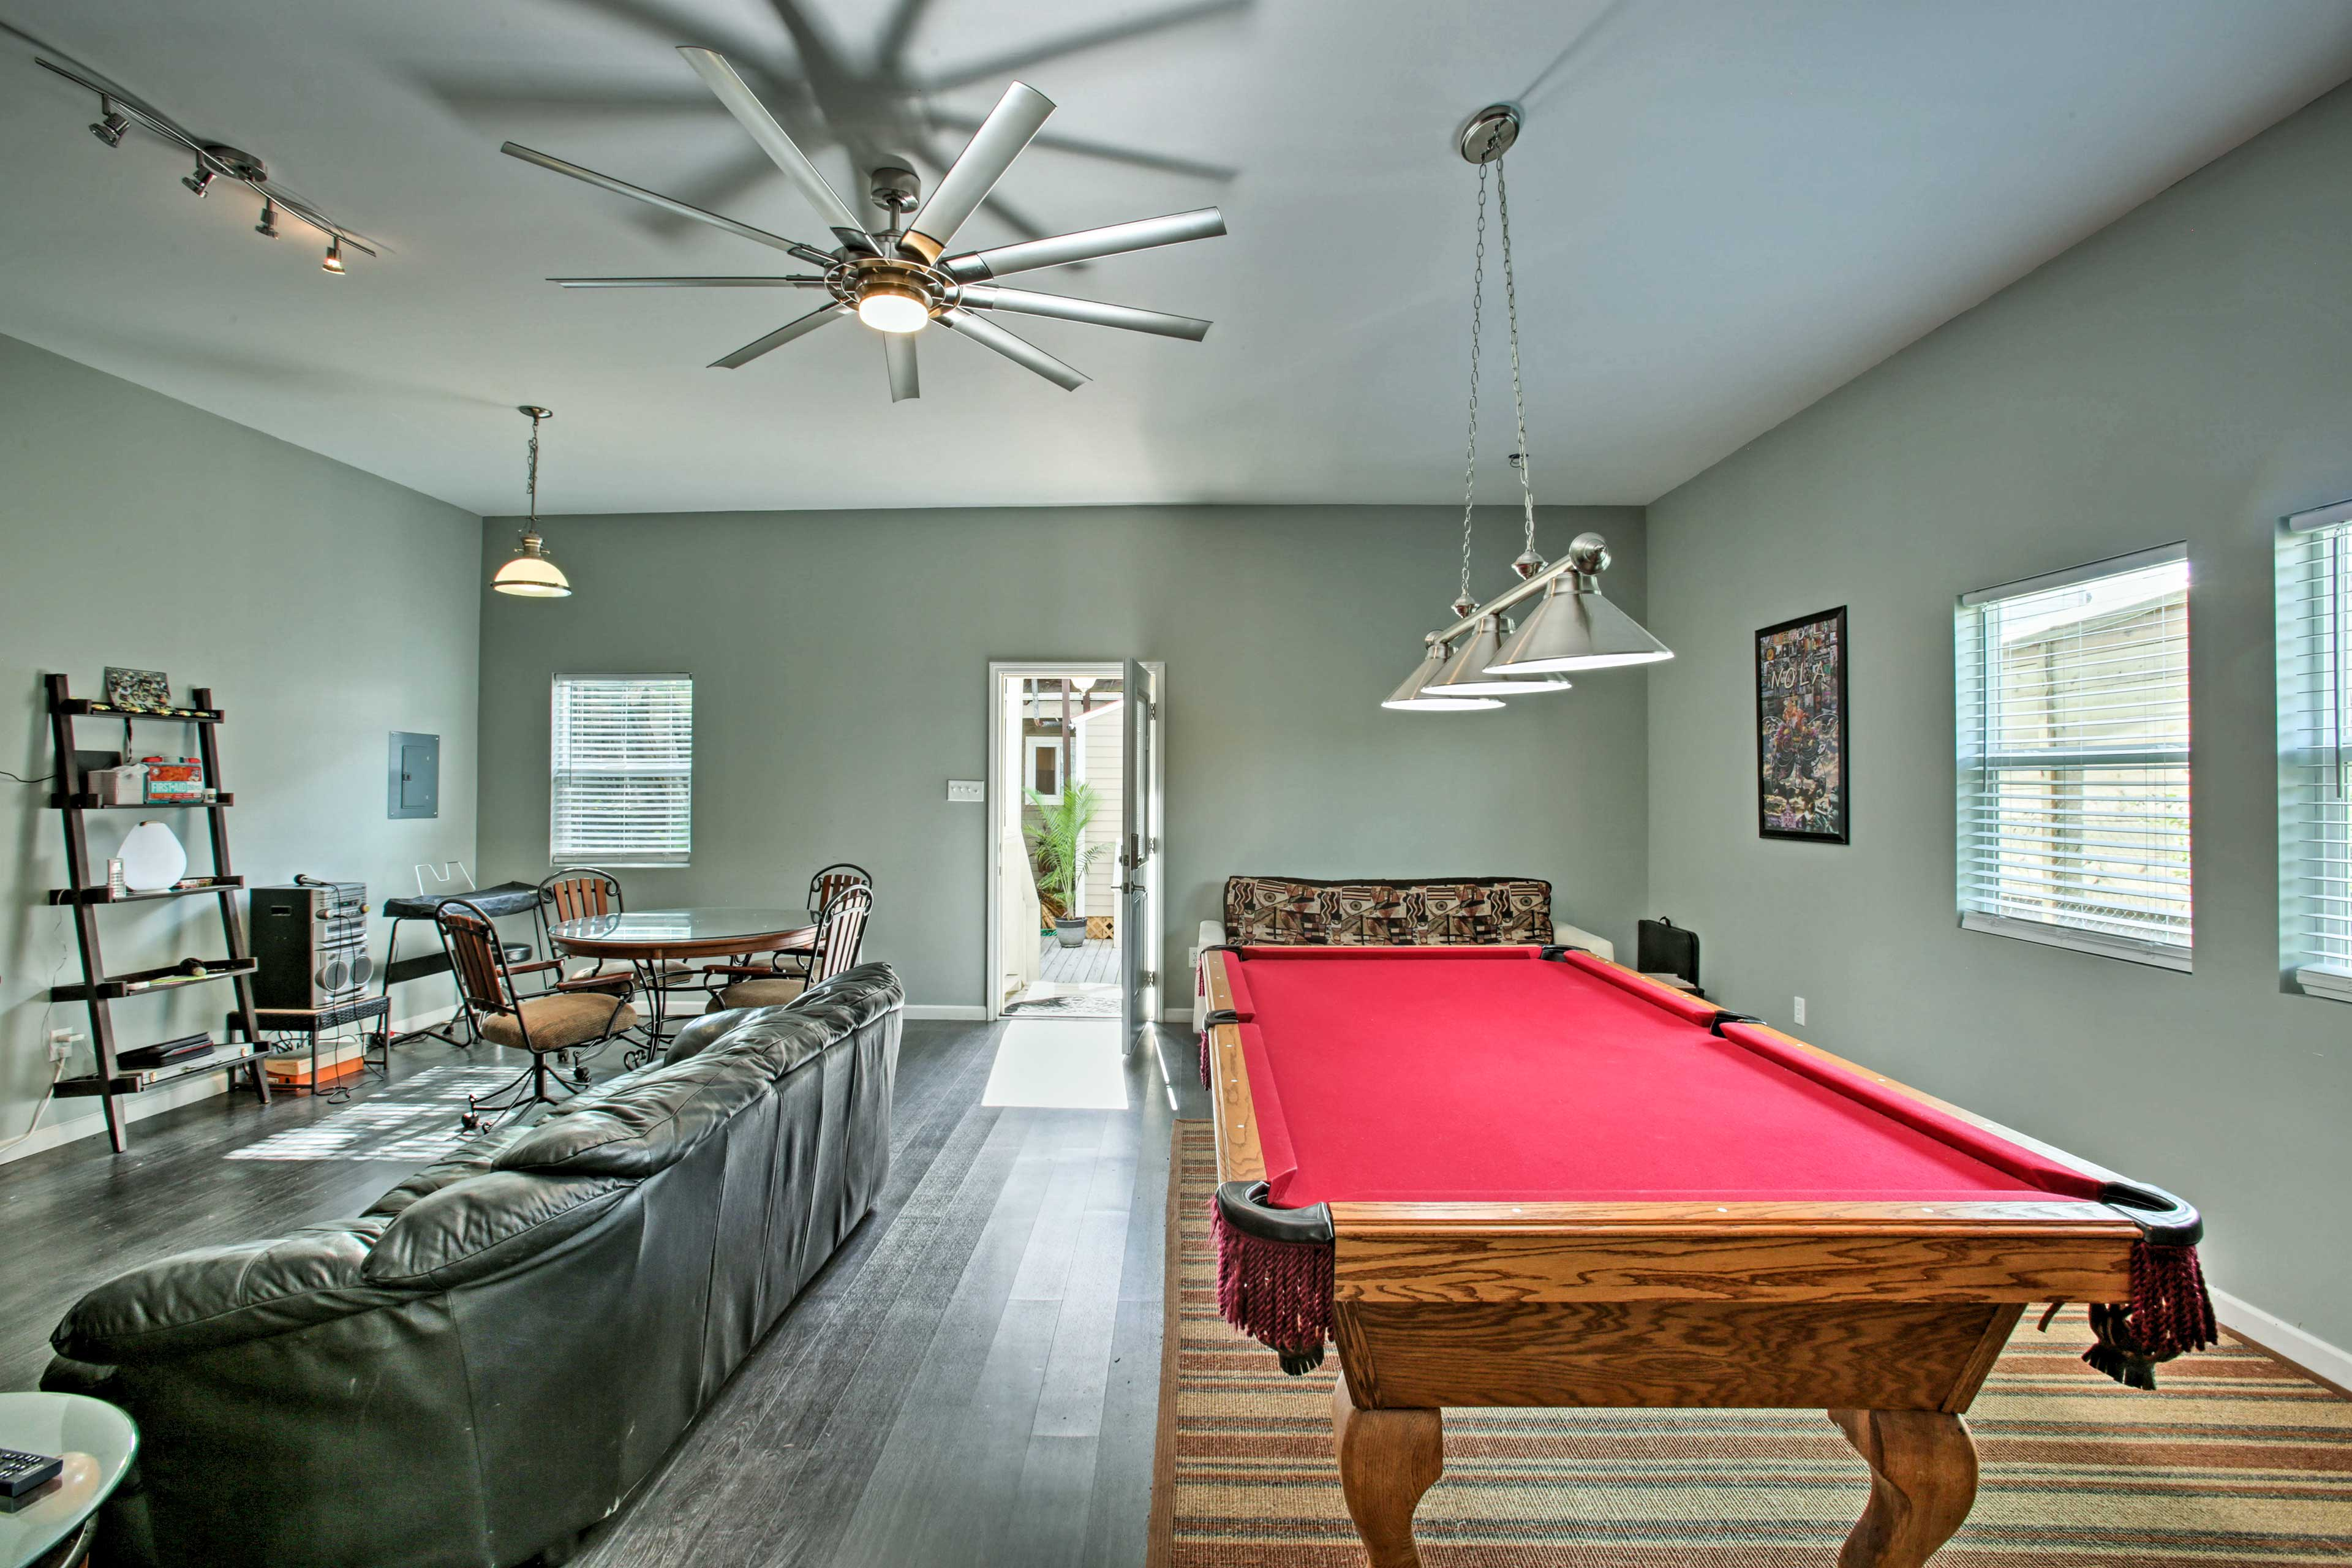 Play some pool or simply relax on the couch.